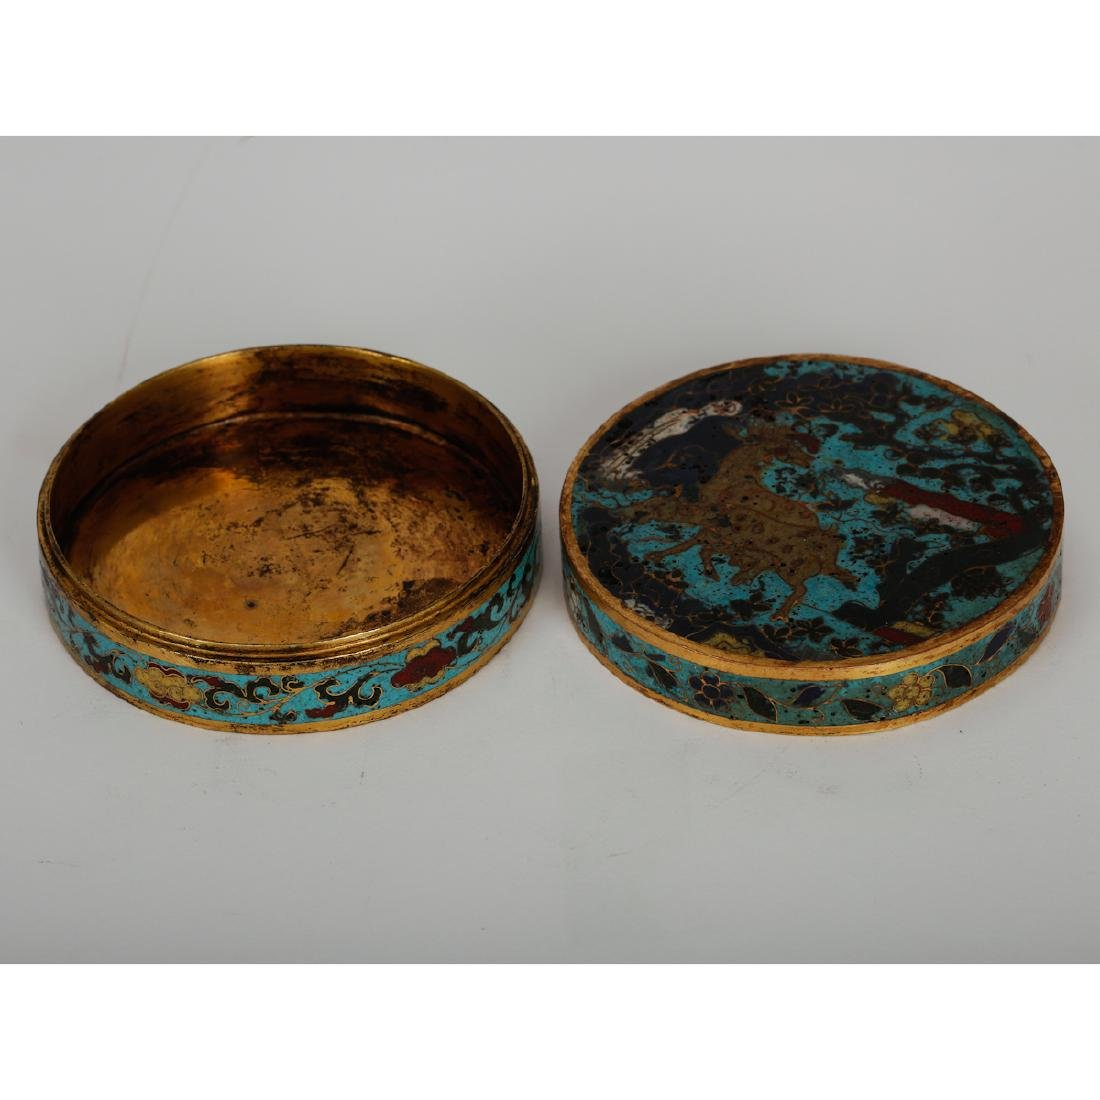 CHINESE CLOISONNE COVER BOX, PAIR - 4